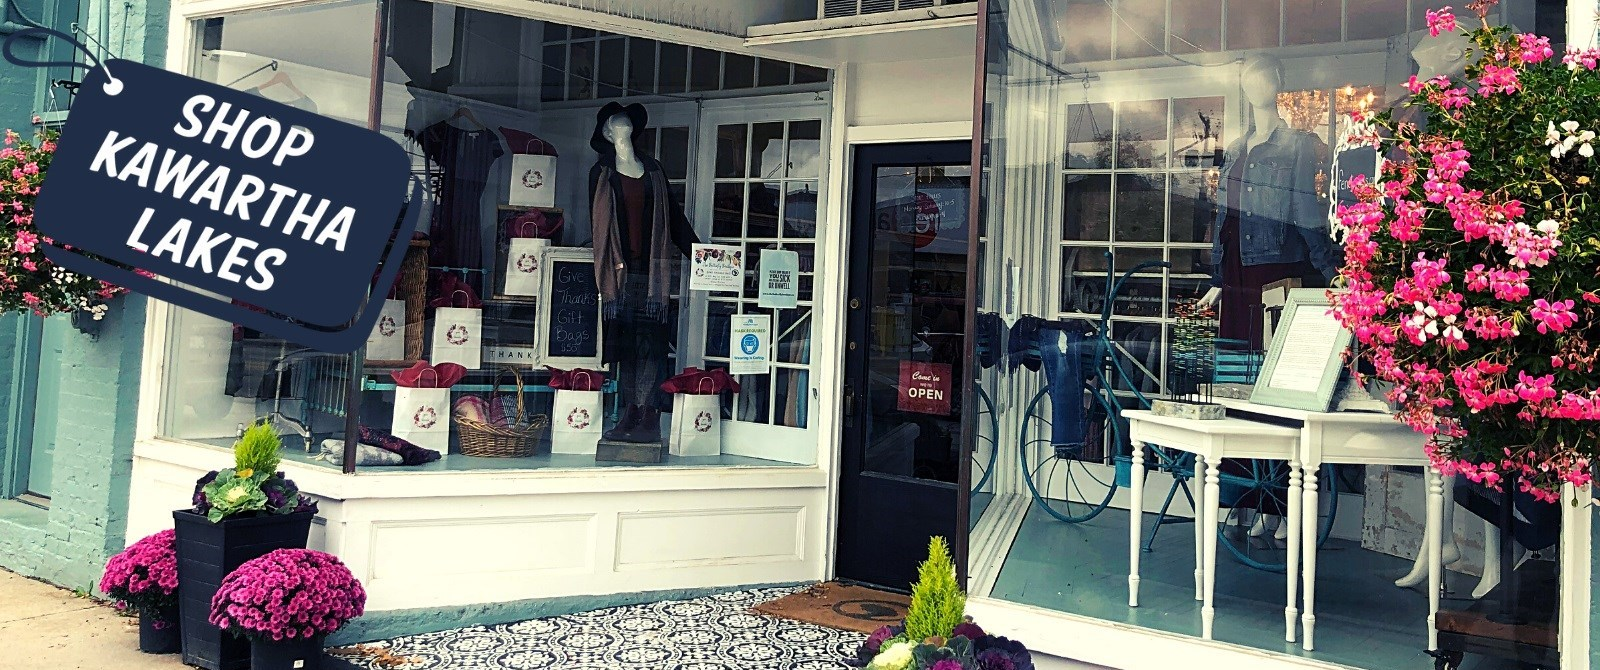 Storefront in fall with shop local message